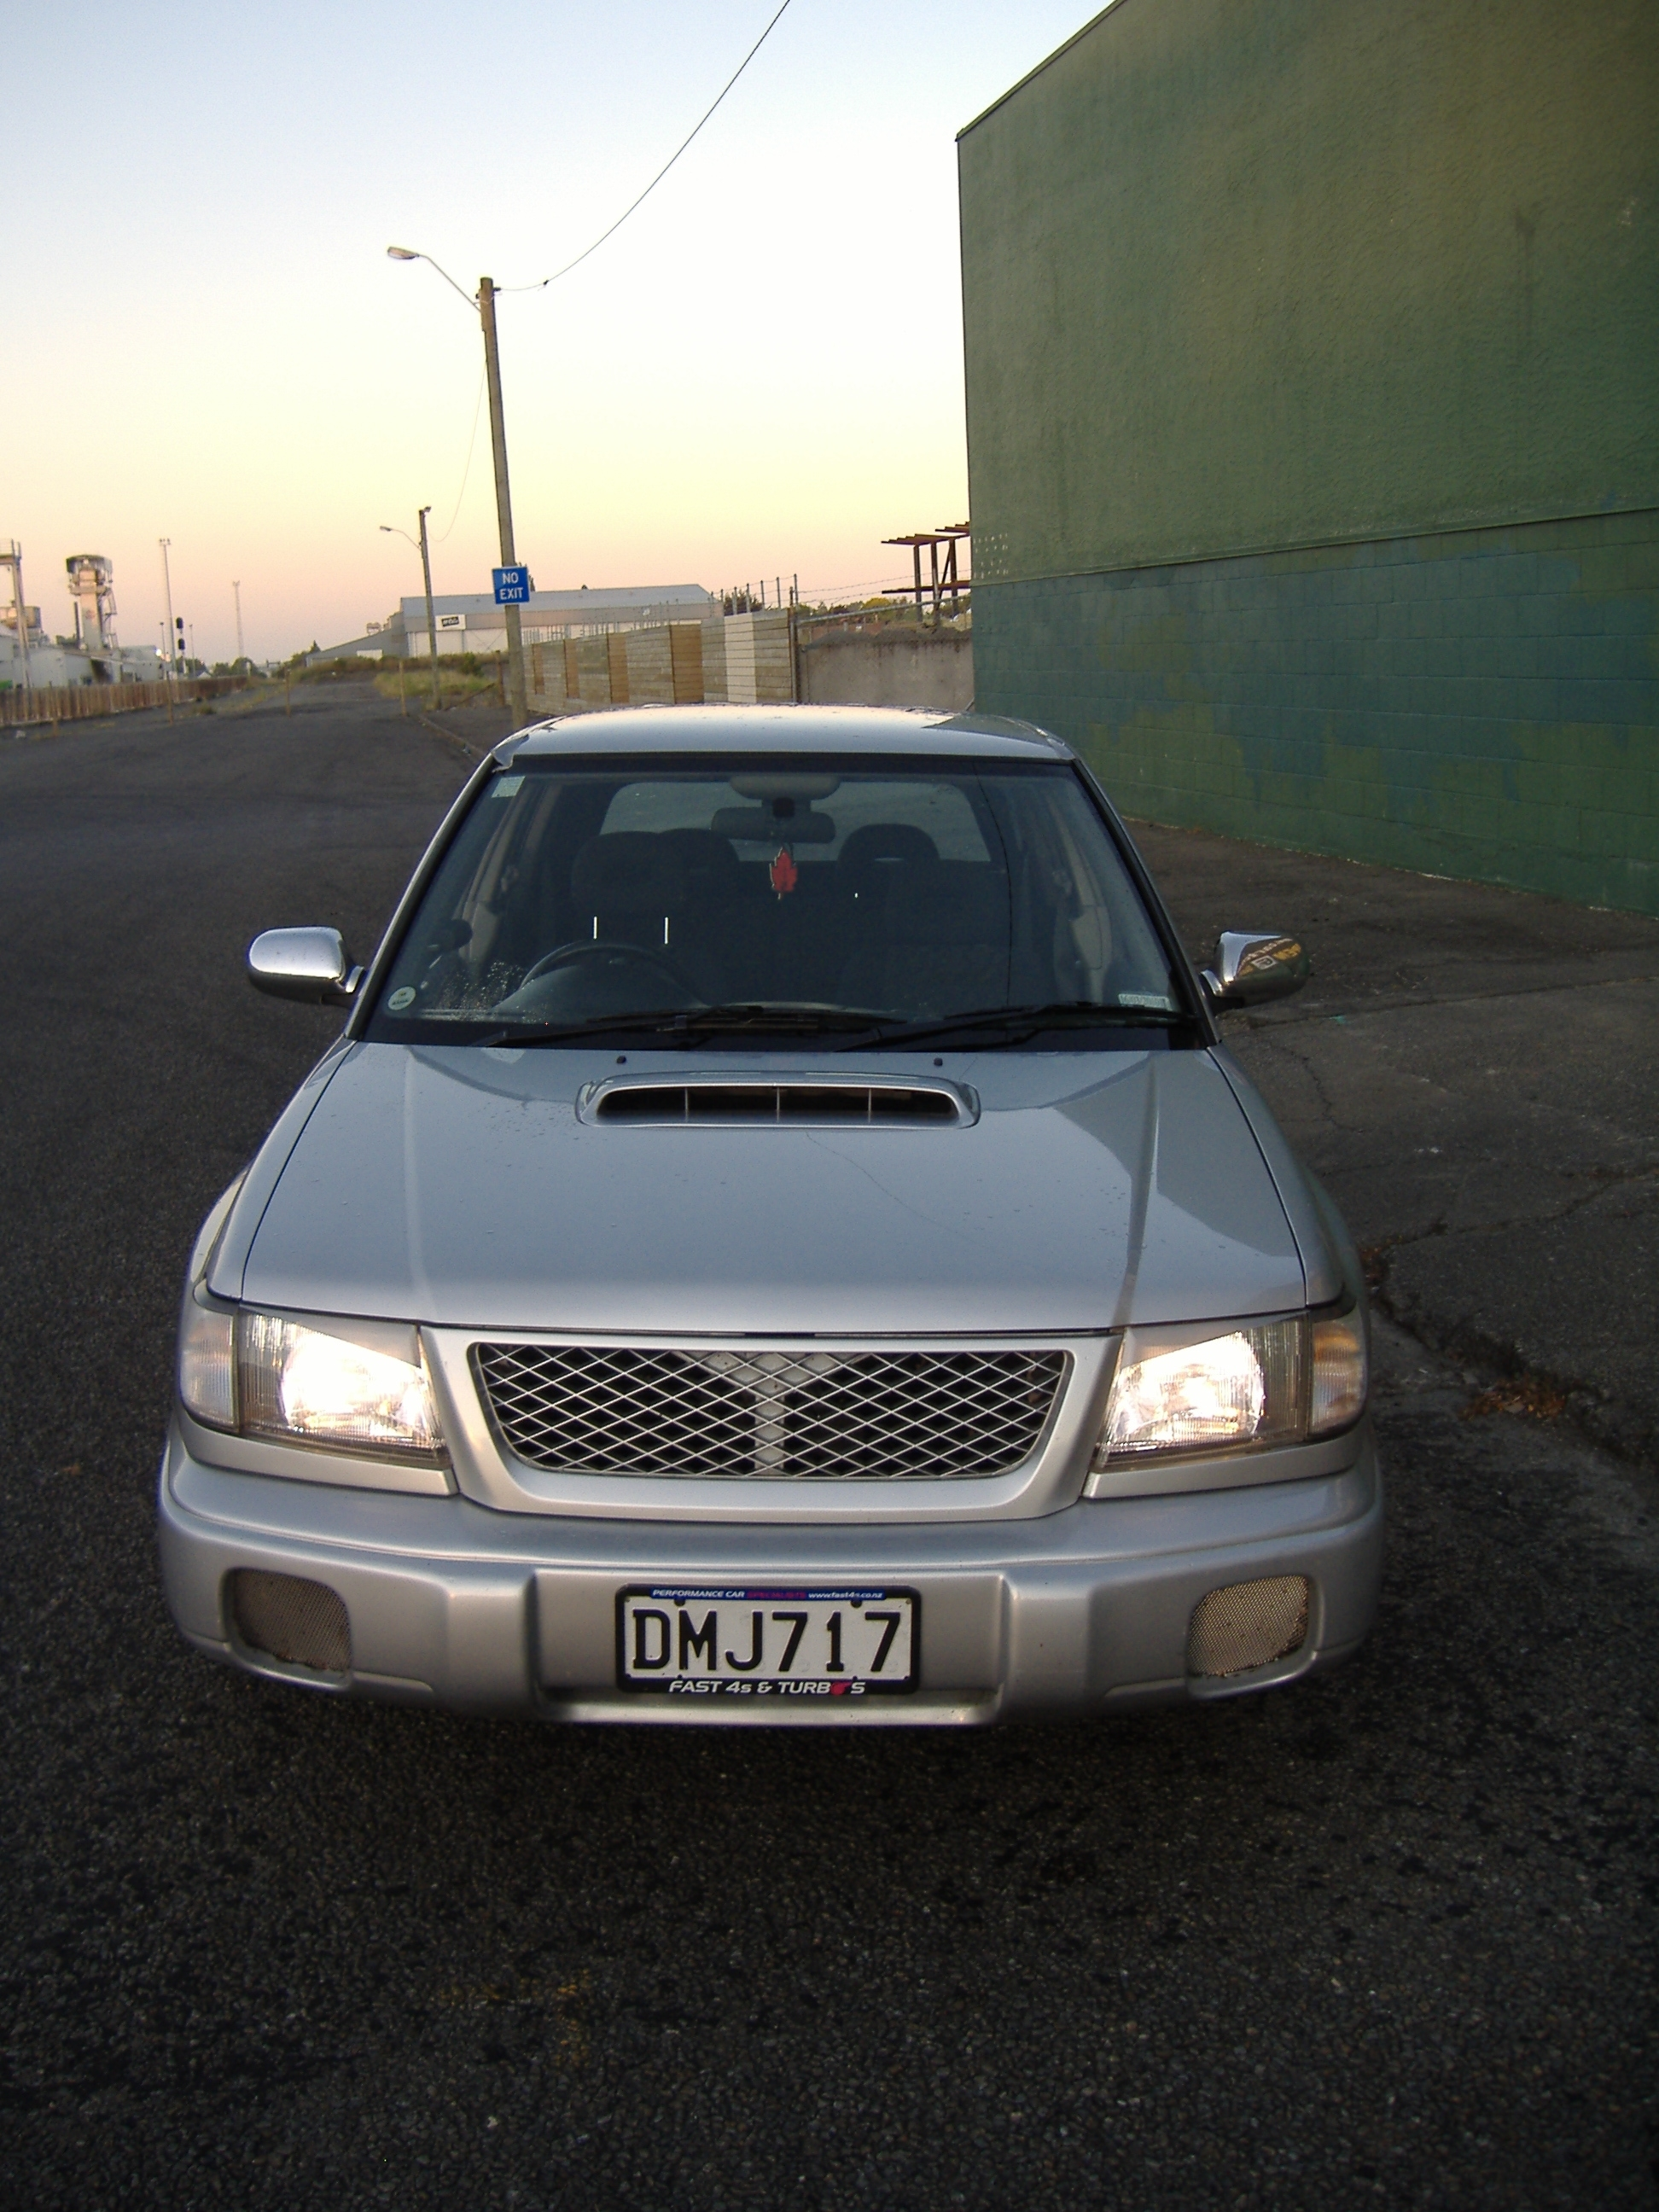 Original on Subaru Forester 2 0 1991 Specs And Images